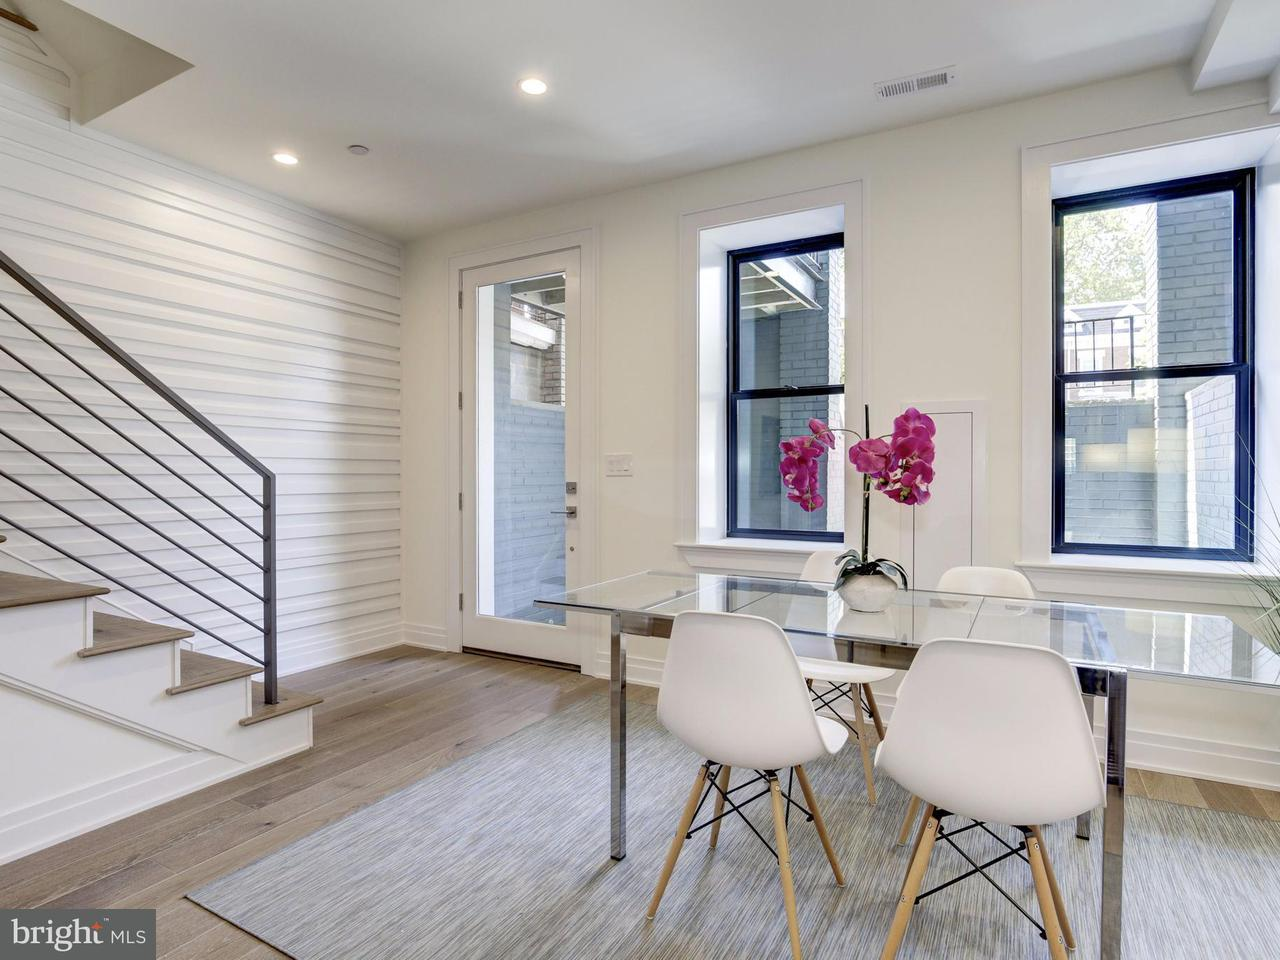 Additional photo for property listing at 1303 SPRING RD NW #1 1303 SPRING RD NW #1 Washington, 哥倫比亞特區 20010 美國